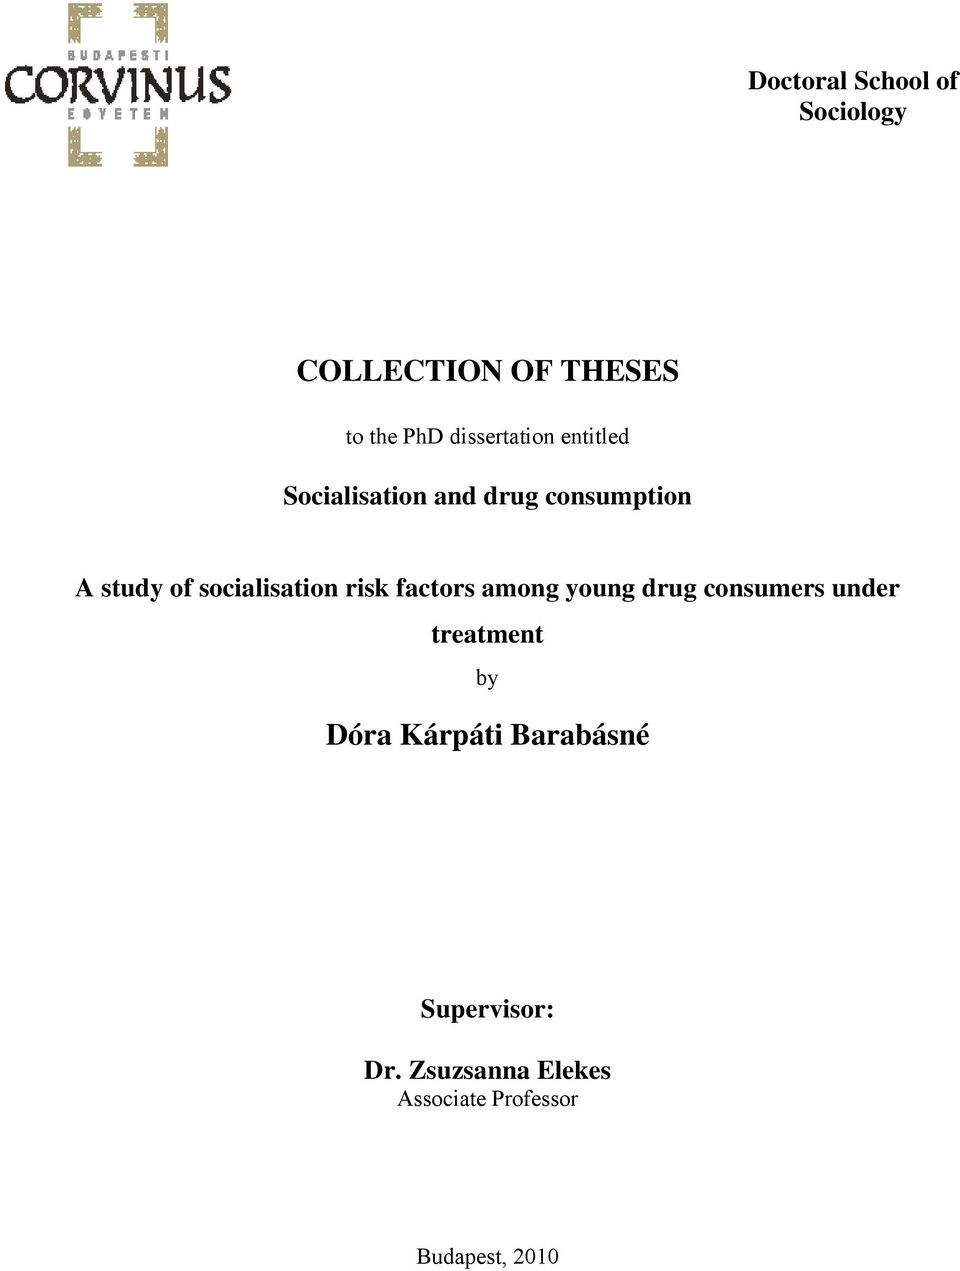 socialisation risk factors among young drug consumers under treatment by